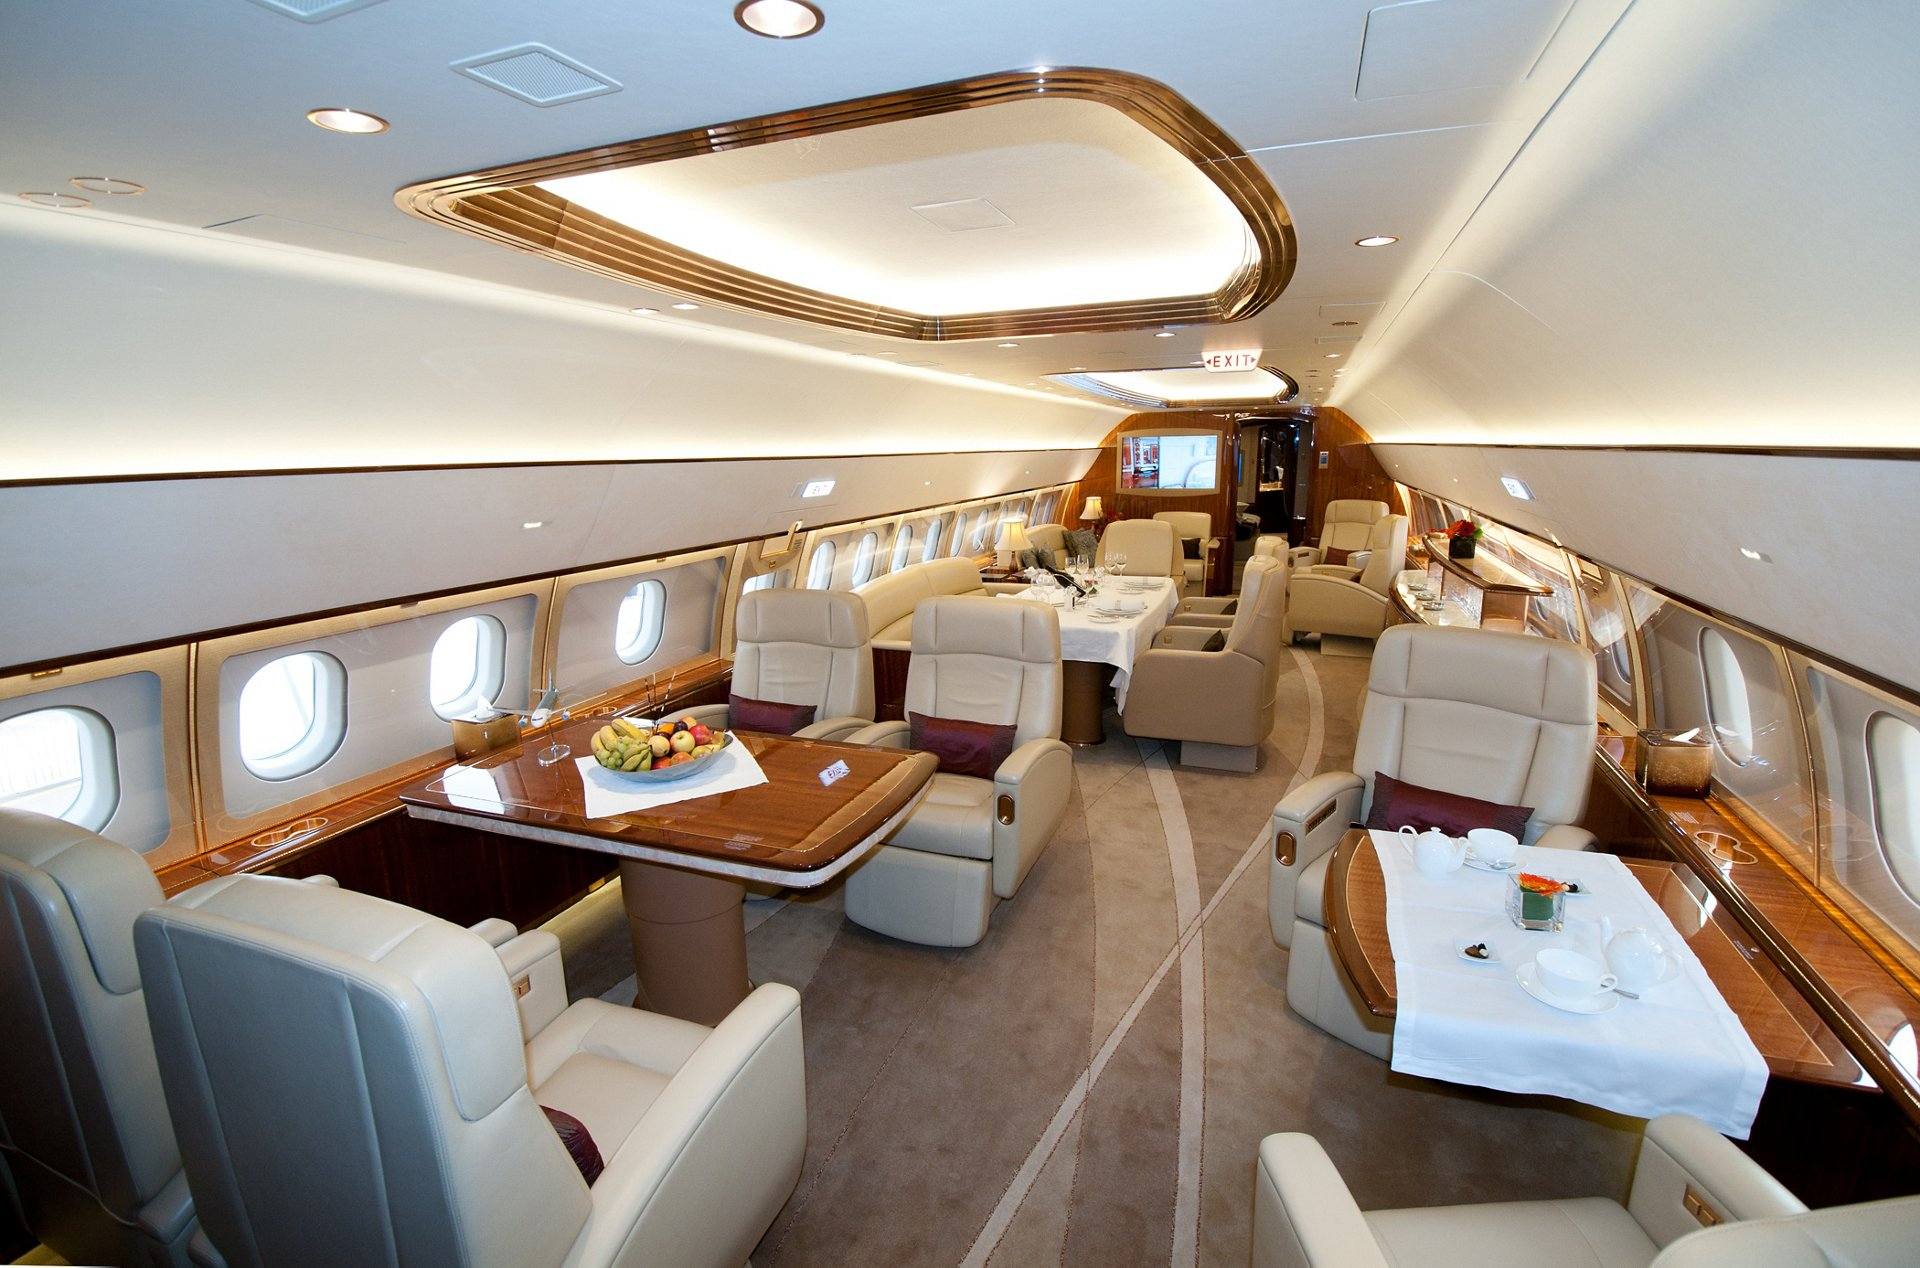 The ACJ319 exhibited at NBAA – offered for VVIP charters by Comlux – features lounge and conference/dining areas, plus two private rooms that can each be laid out as either a lounge or a bedroom